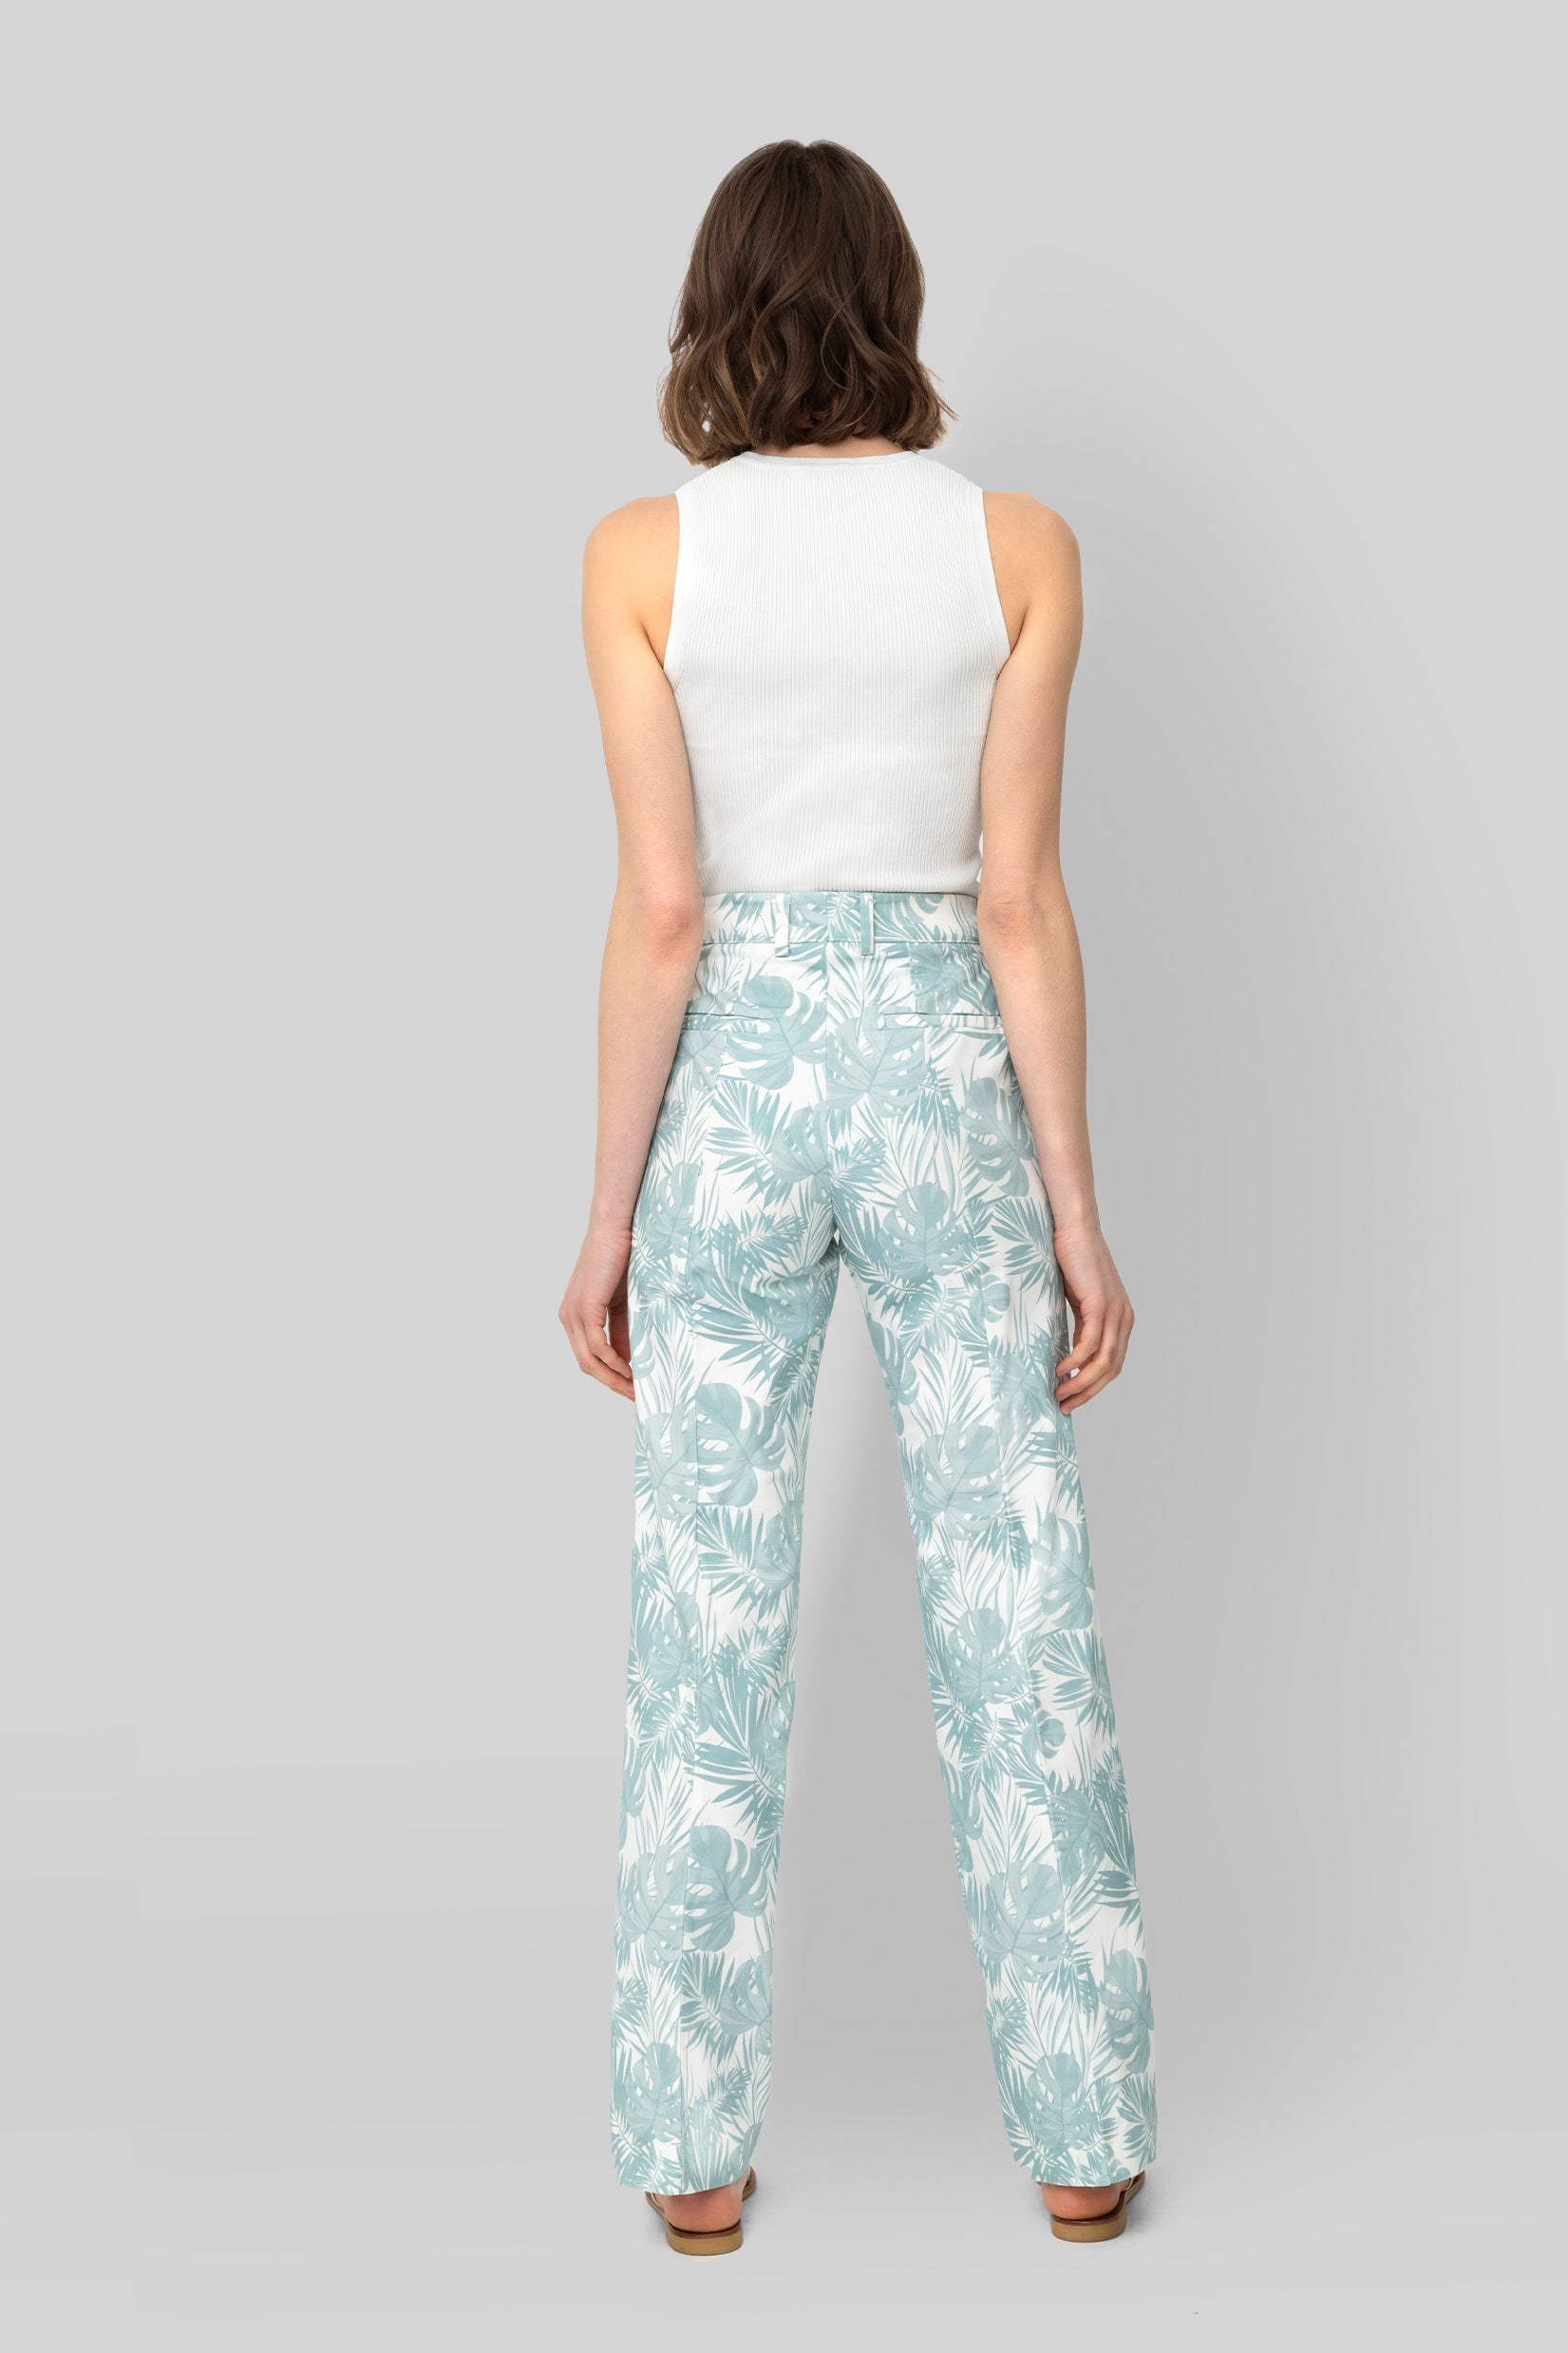 The Printed Cotton Teal Lover Pants